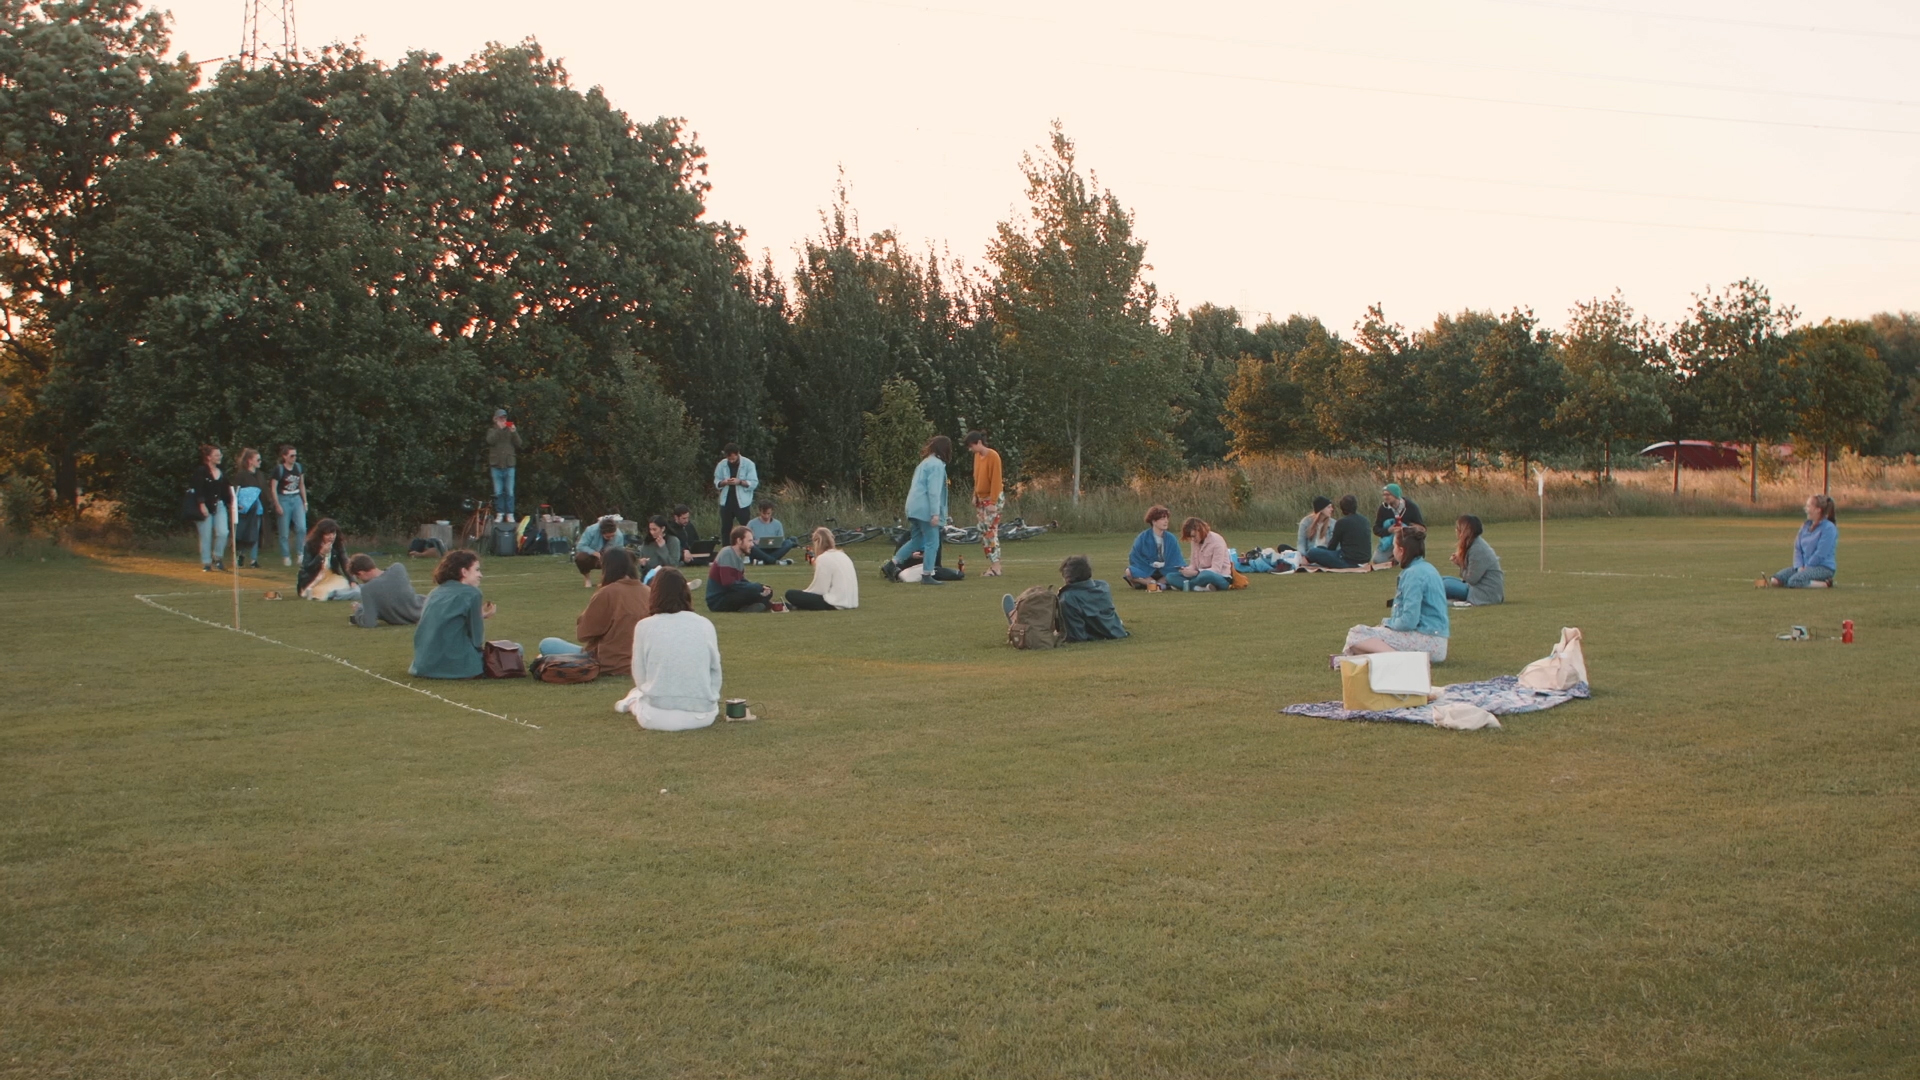 FieldofSounds-Img20.jpg